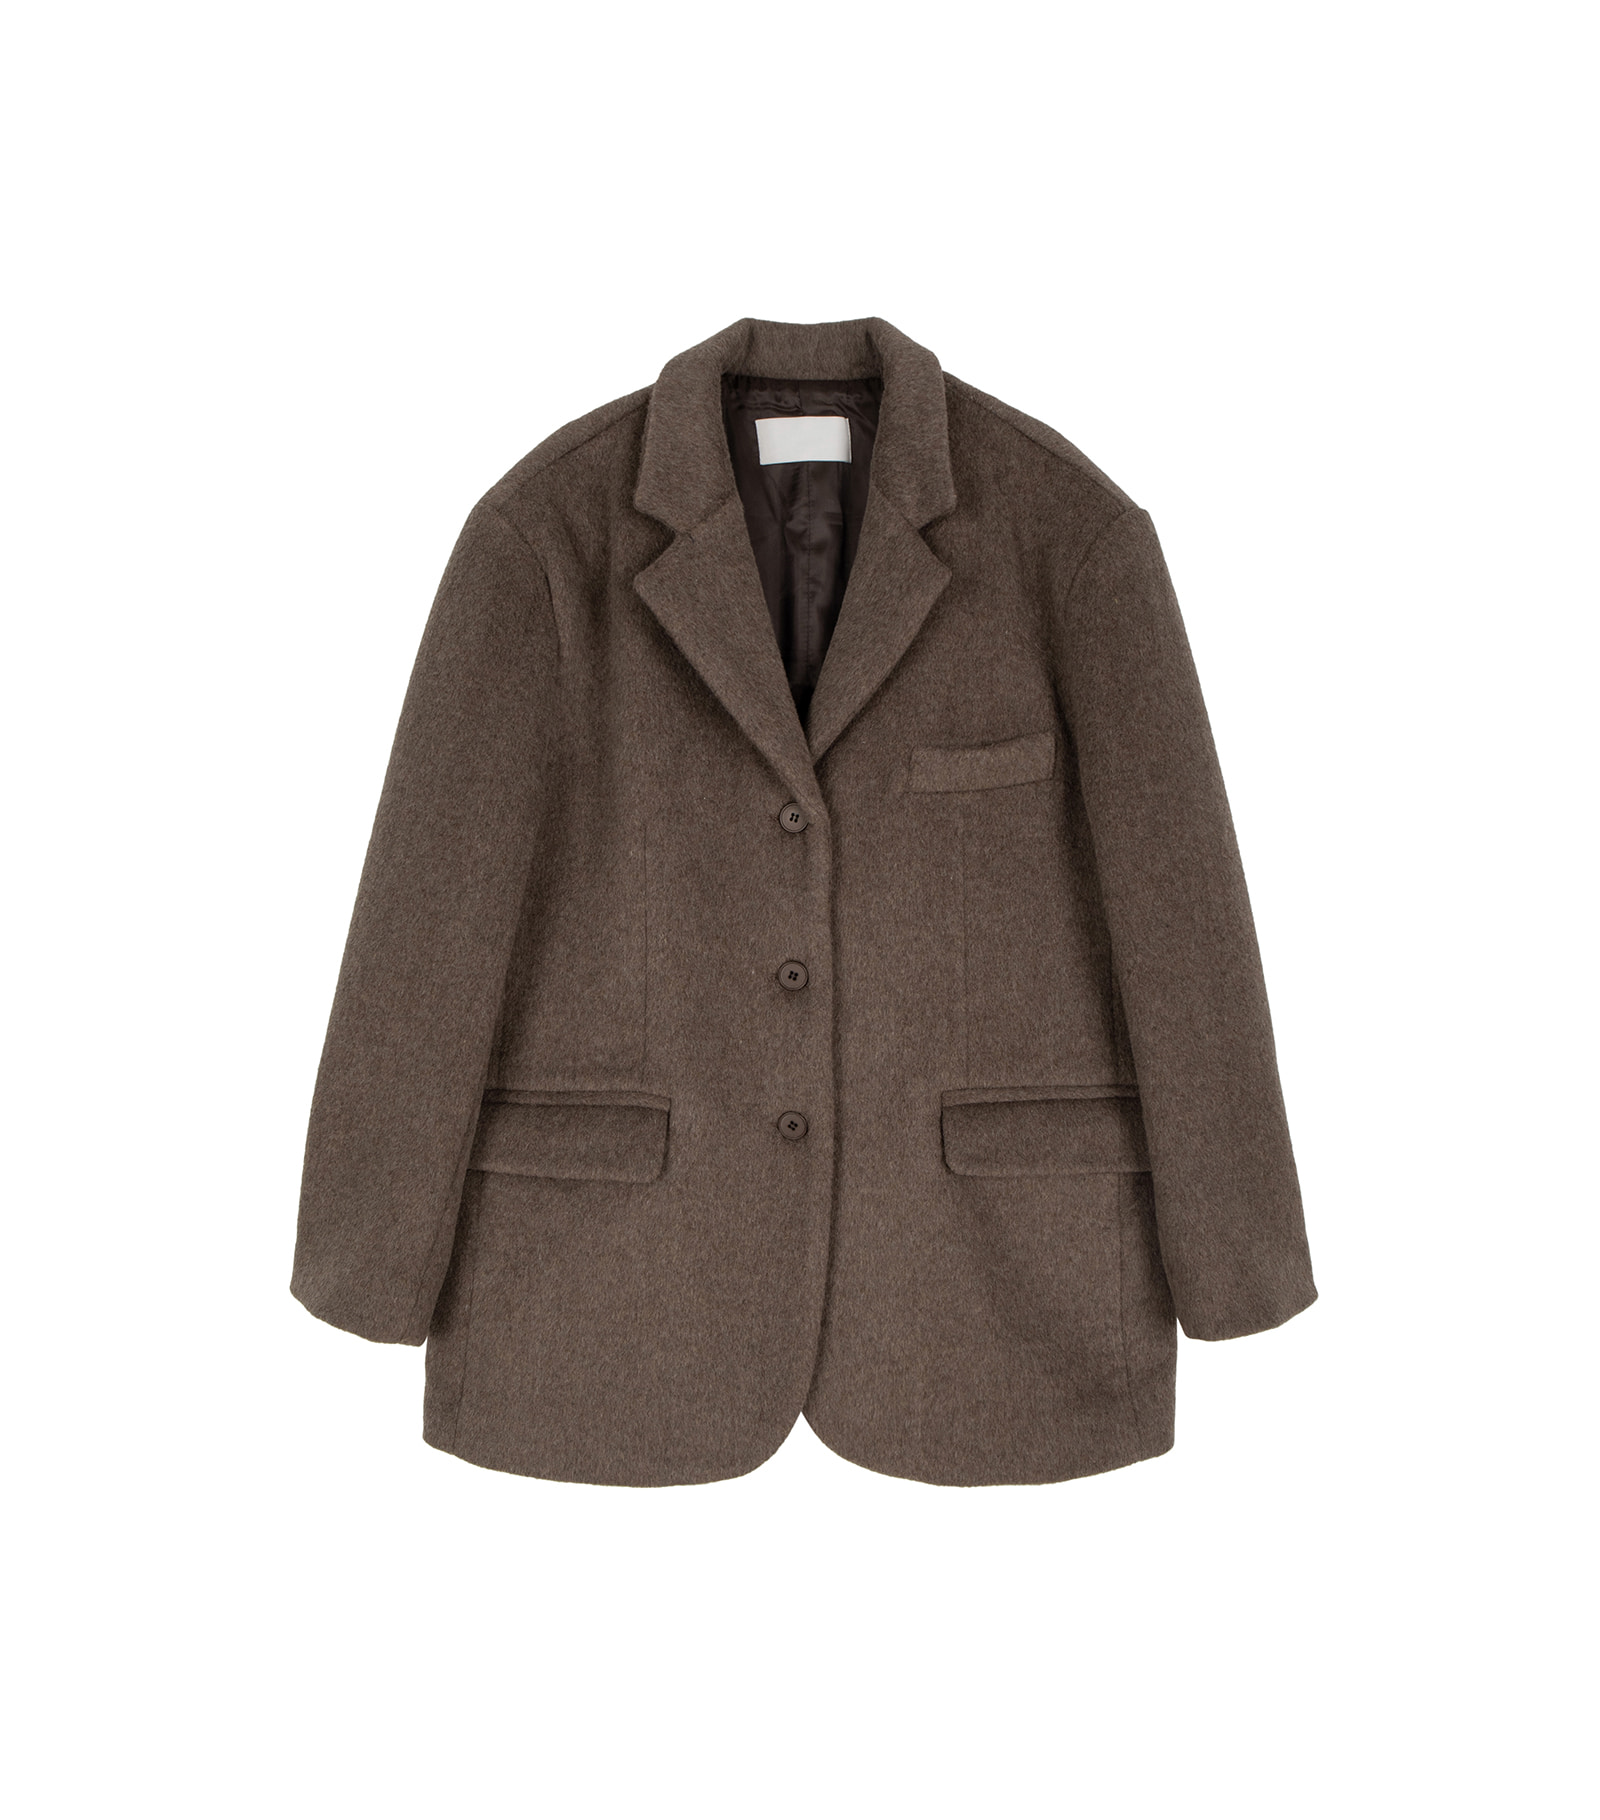 Bird wool single blazer